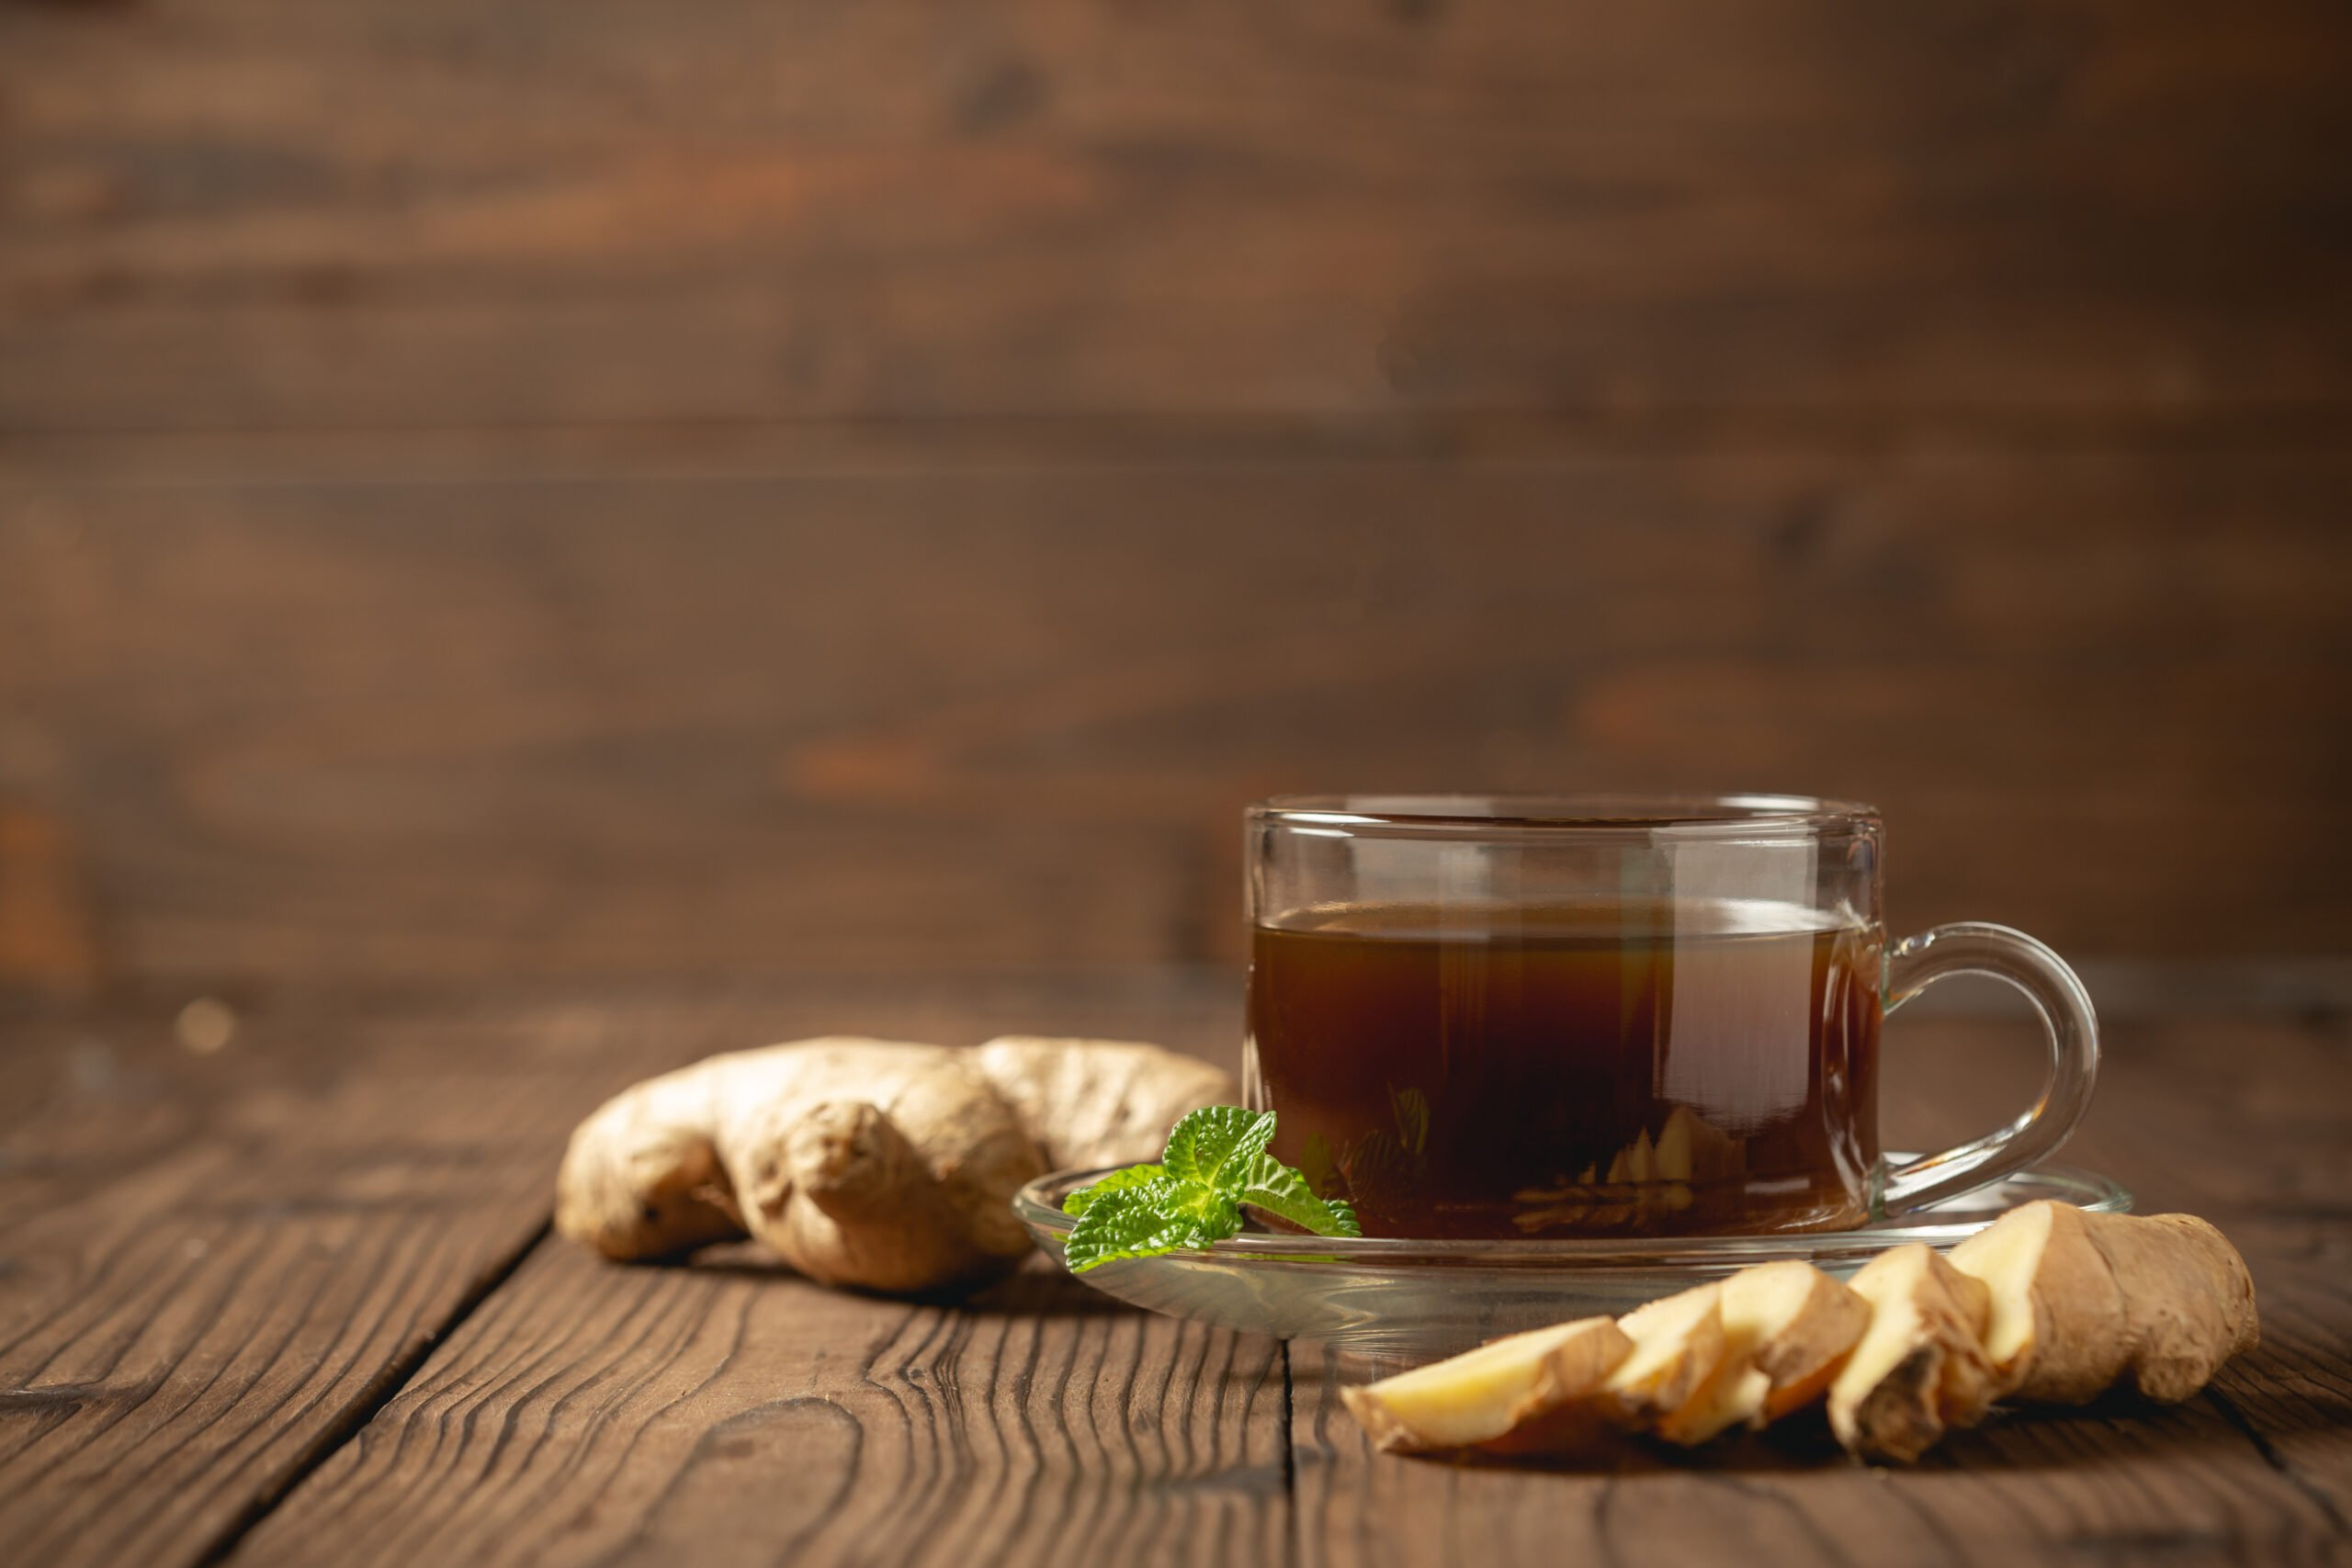 hot-ginger-juice-and-ginger-sliced-on-wooden-table-1-scaled